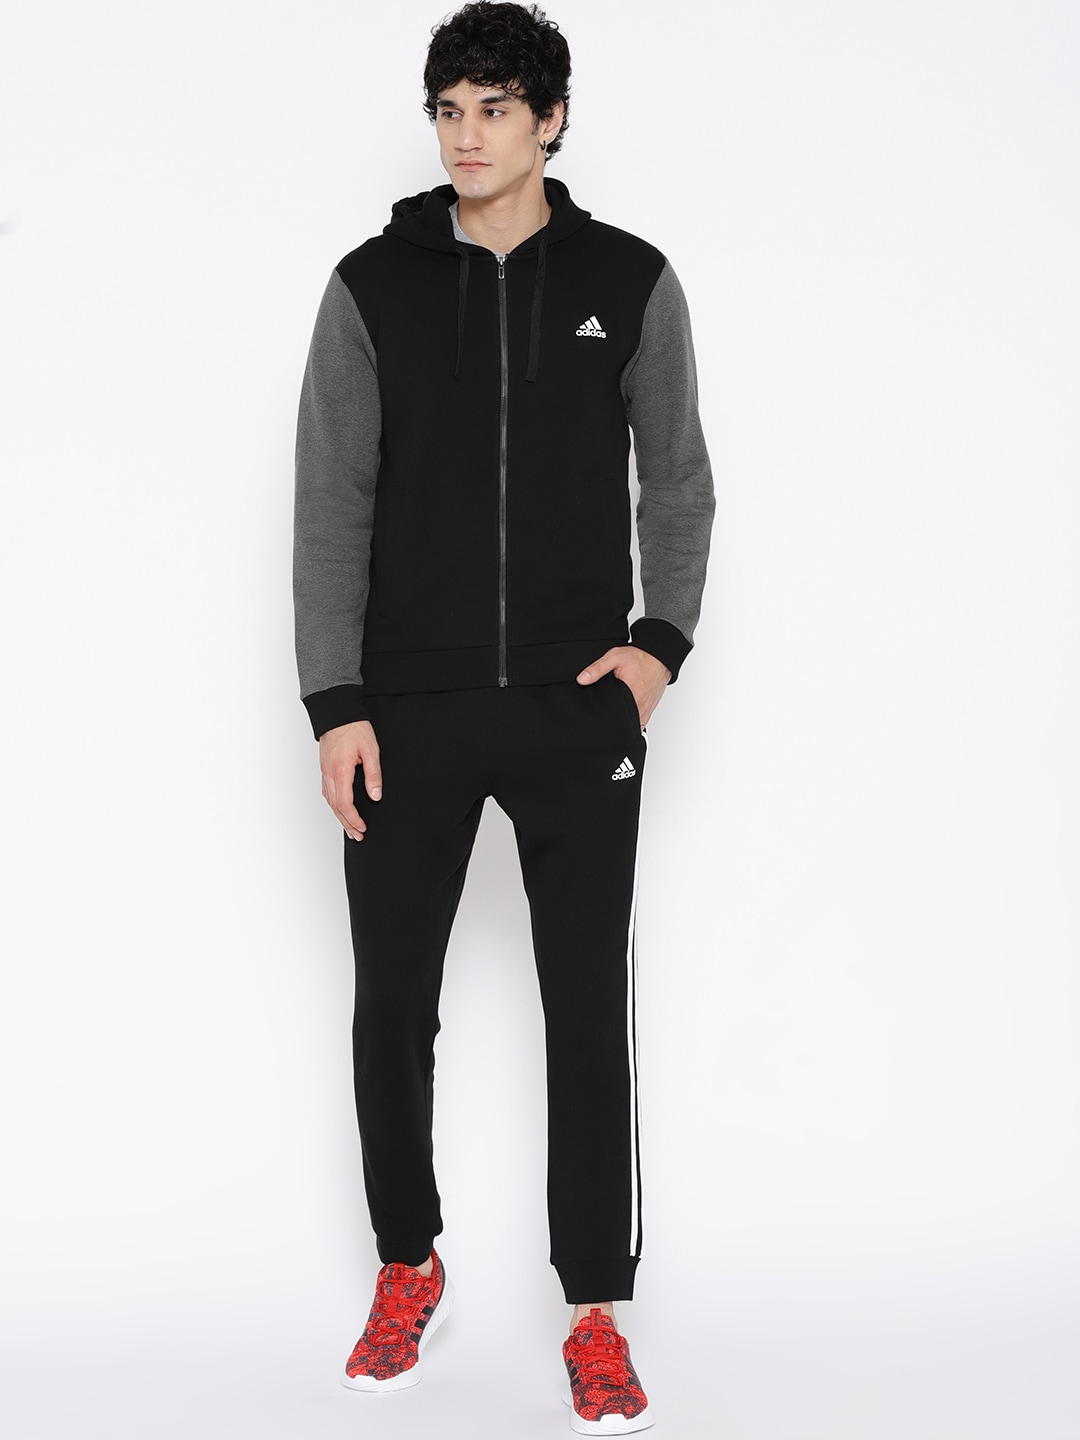 2ce766914fc Adidas Ts Ess Kn Black Tracksuit for men price - Best buy price in ...